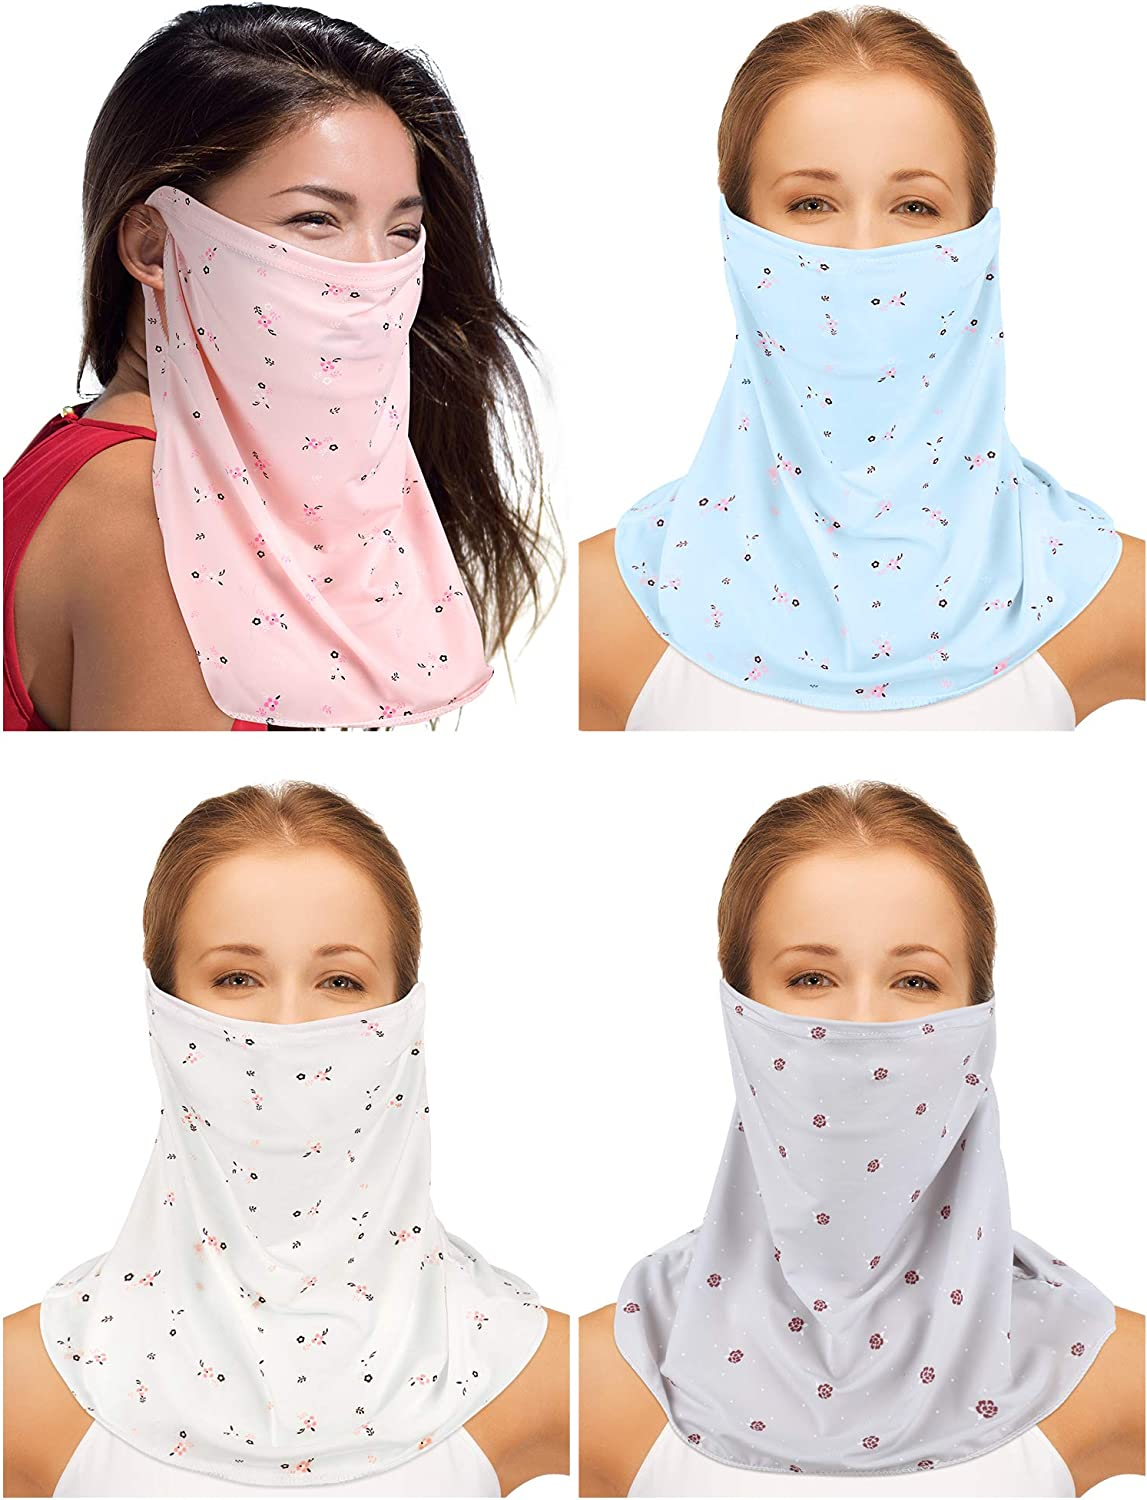 Sun Protection Face Cover Breathable Ear Loops Face Cover Neck Gaiter Scarf UV Protection Bandana (White, Pink, Light Blue and Gray, 4 Pieces)